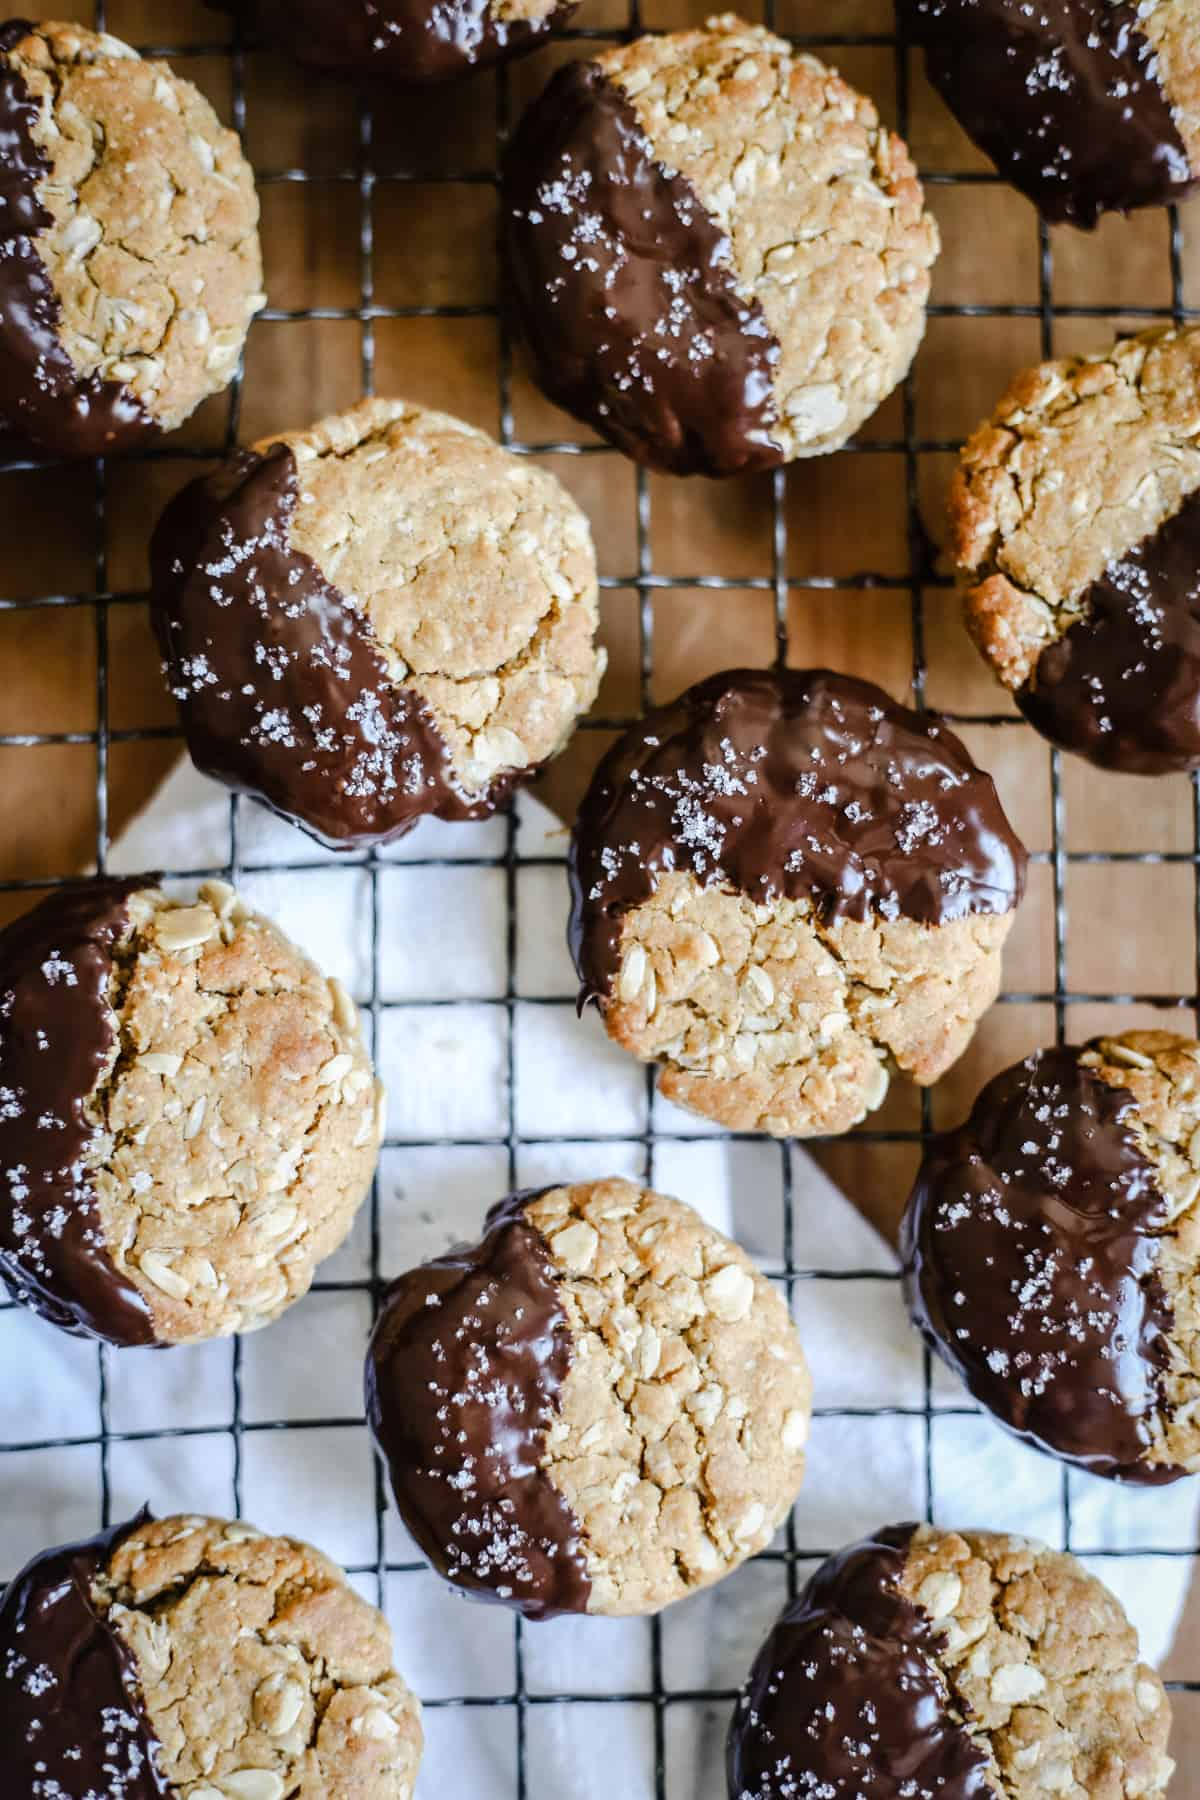 Gluten-Free Chocolate-Dipped Oat Peanut Butter Cookies on a wire rack